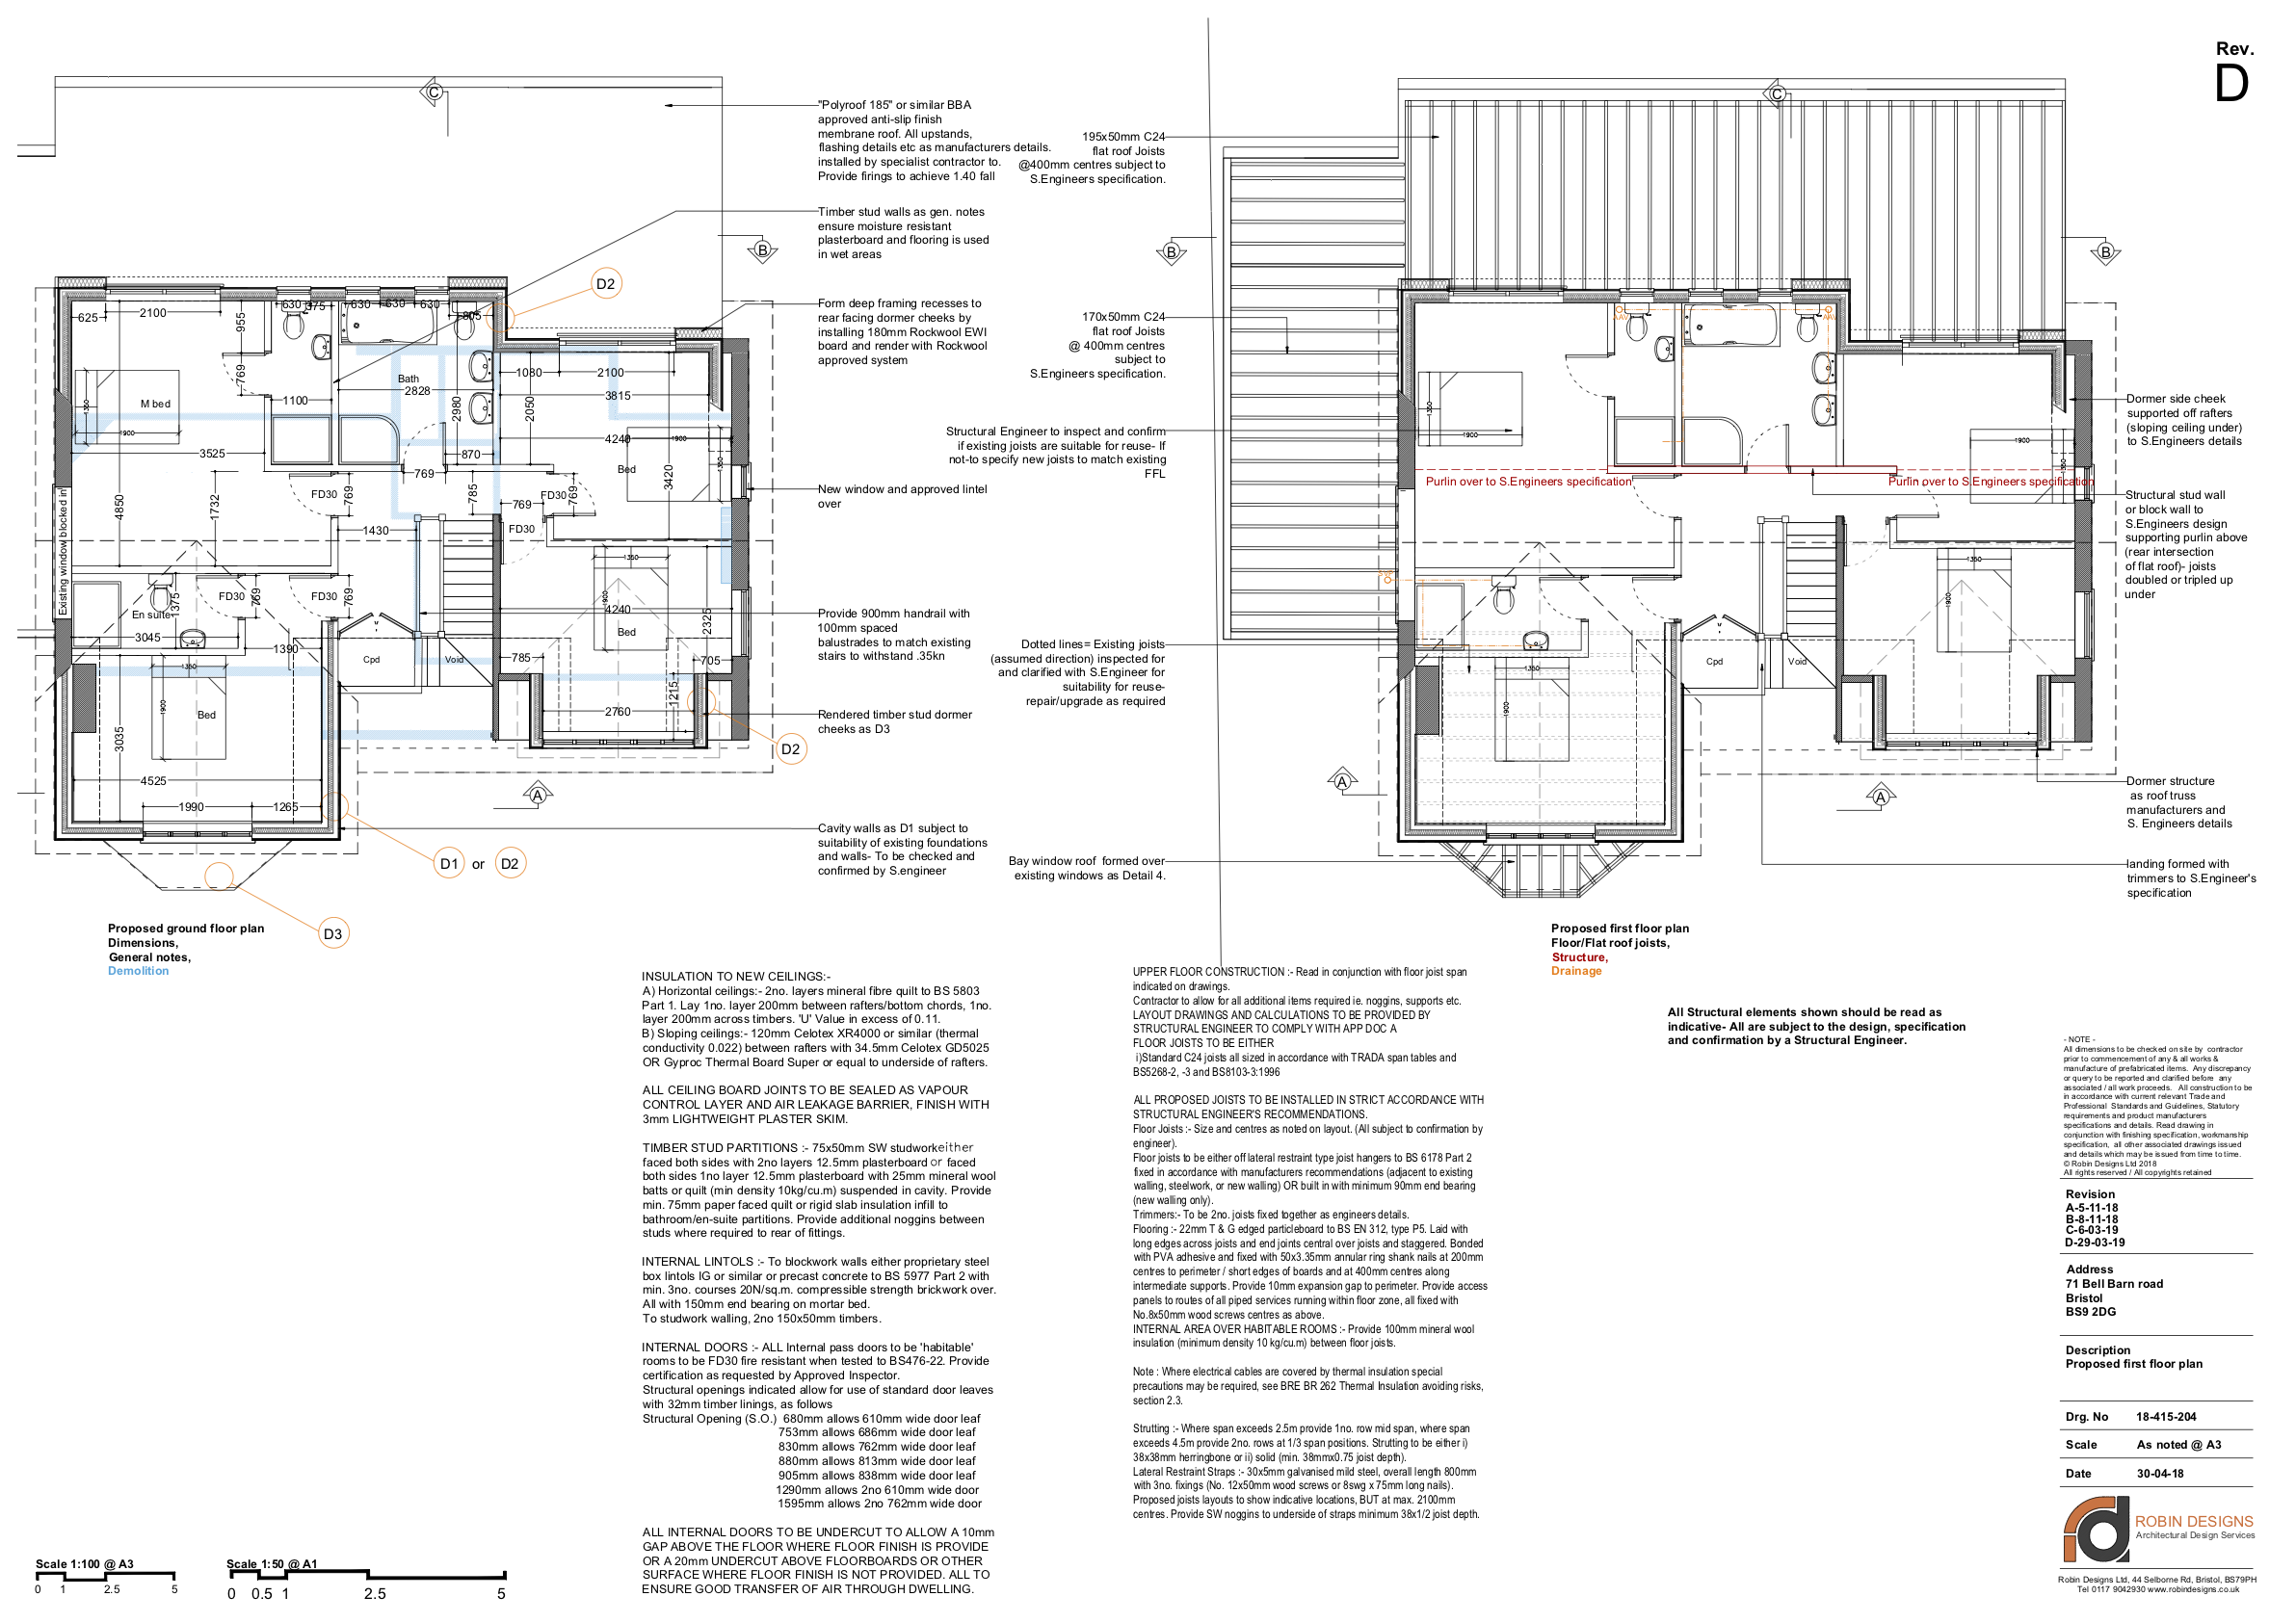 71 Bell barn construction drawings 29-03-19-204 FF Gen.png